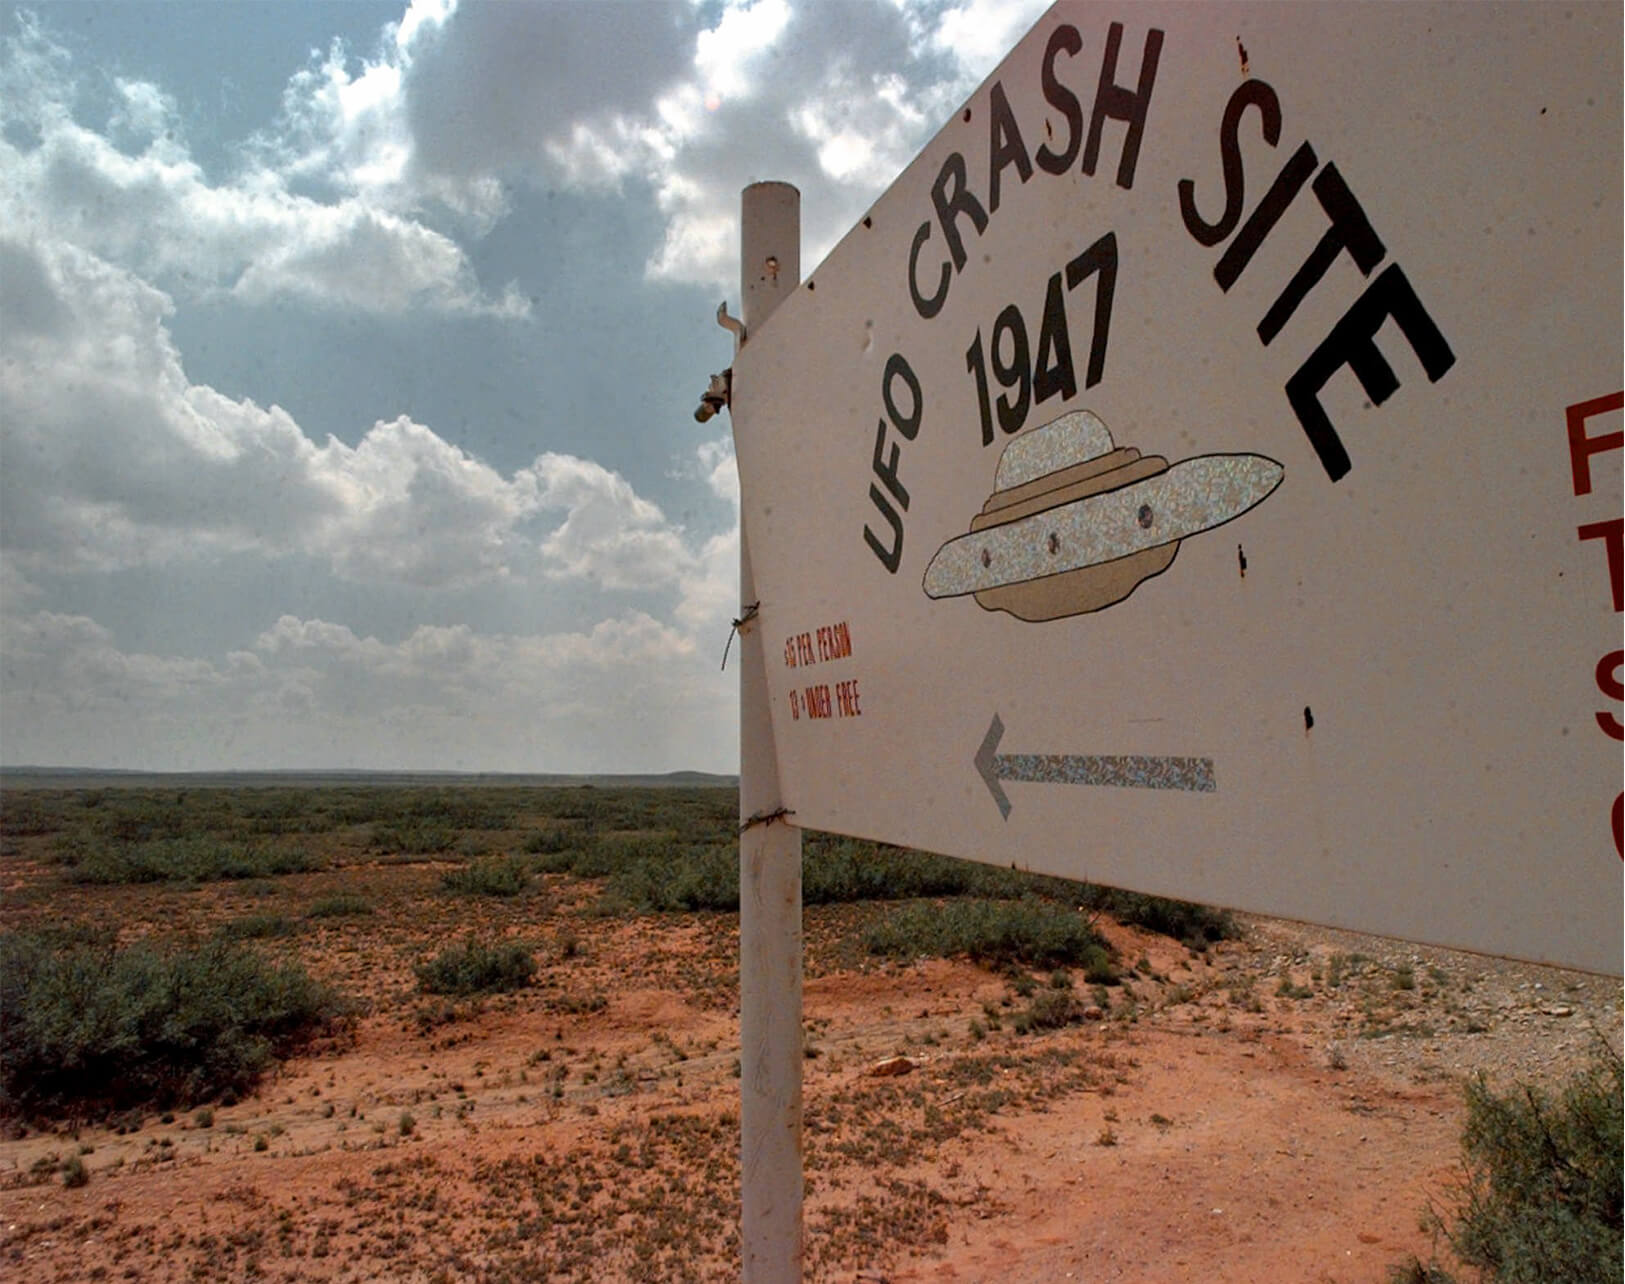 Conspiracy Hot Spots Worth the Trip